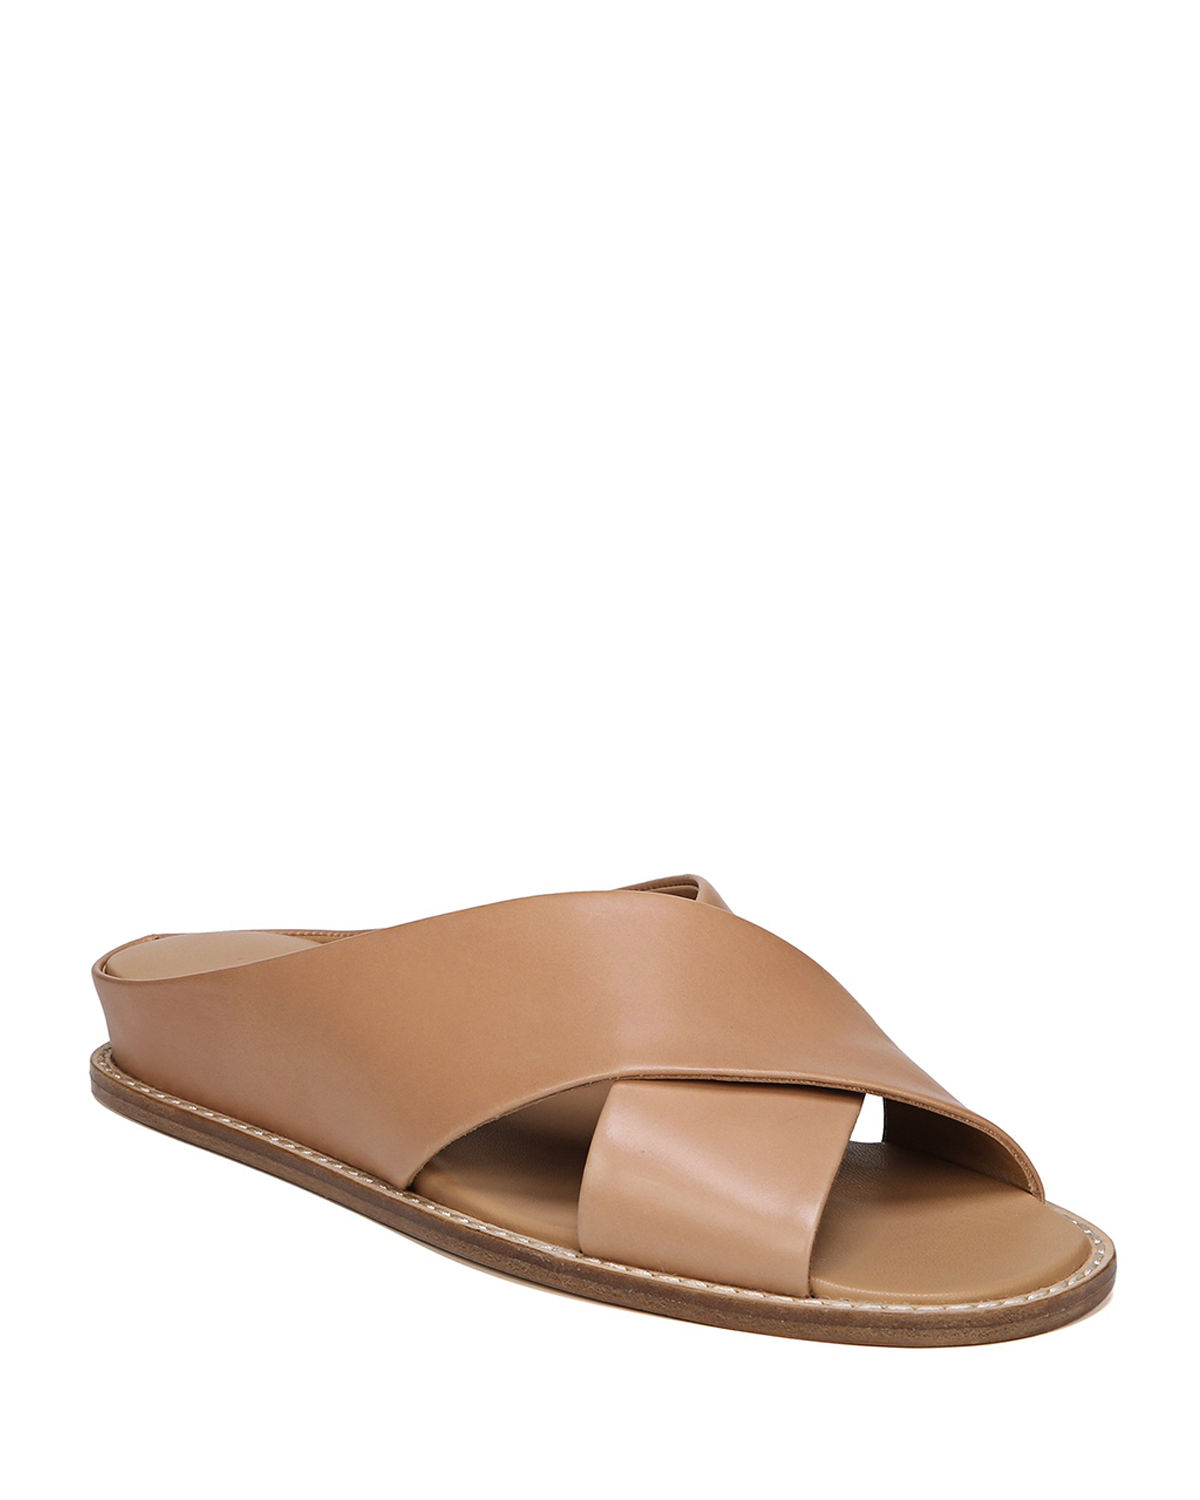 Vince Women's Fairley Leather Slide Sandals Free Shipping Inexpensive jeV2gNRfx